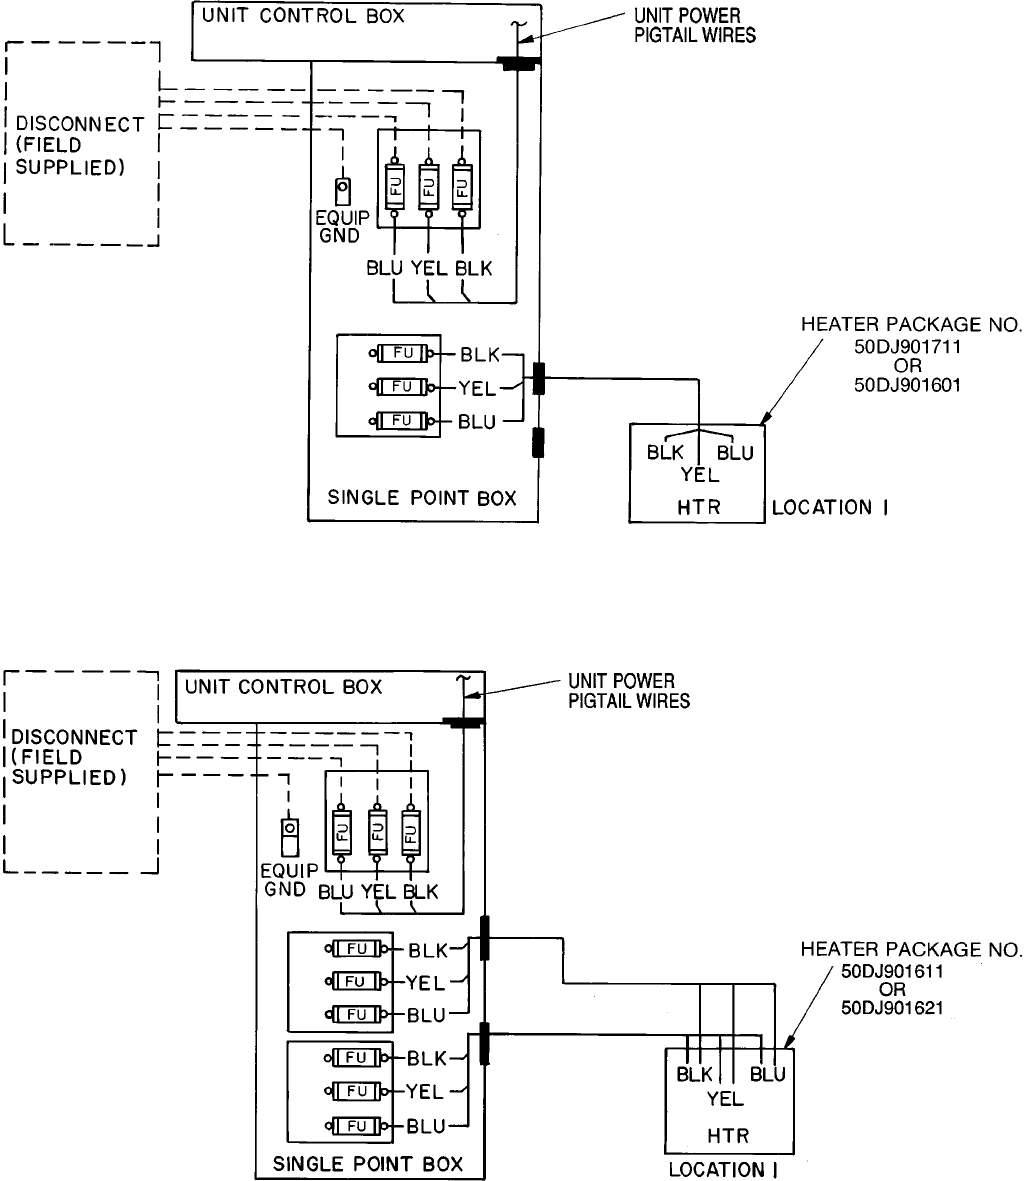 fd572ff0 e968 4f57 a7bf e350fc2b71b6 bg9?resize\\\\\\\\\\\\\\\=665%2C765 honeywell s plan wiring diagram honeywell thermostat 5 wire honeywell wiring wizard at n-0.co